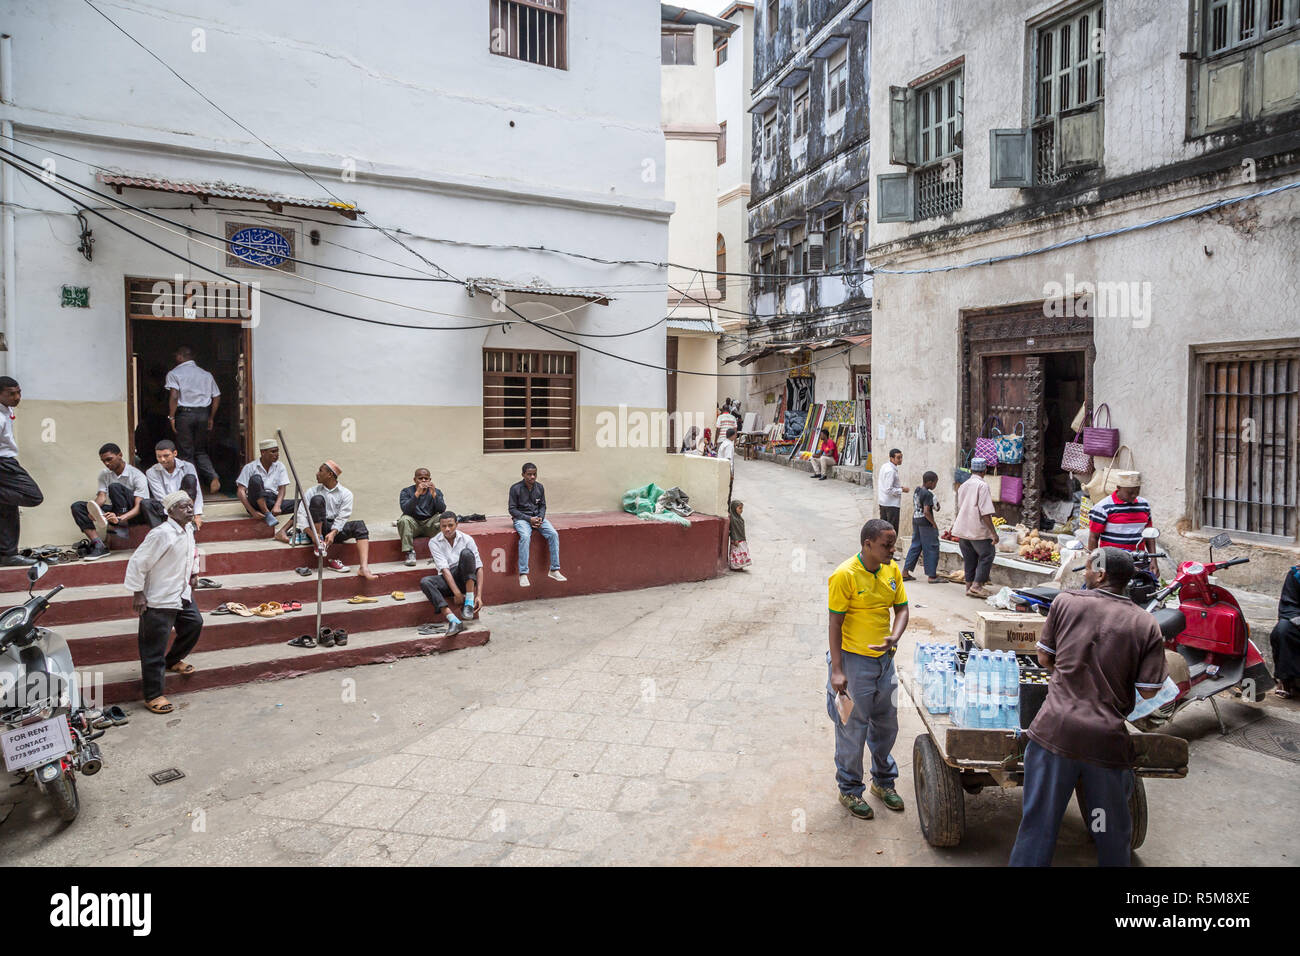 STONE TOWN, ZANZIBAR - AUGUST 15, 2015: Local people on a typical alley street in Stone Town. Stone Town is the old part of Zanzibar City, the capital - Stock Image